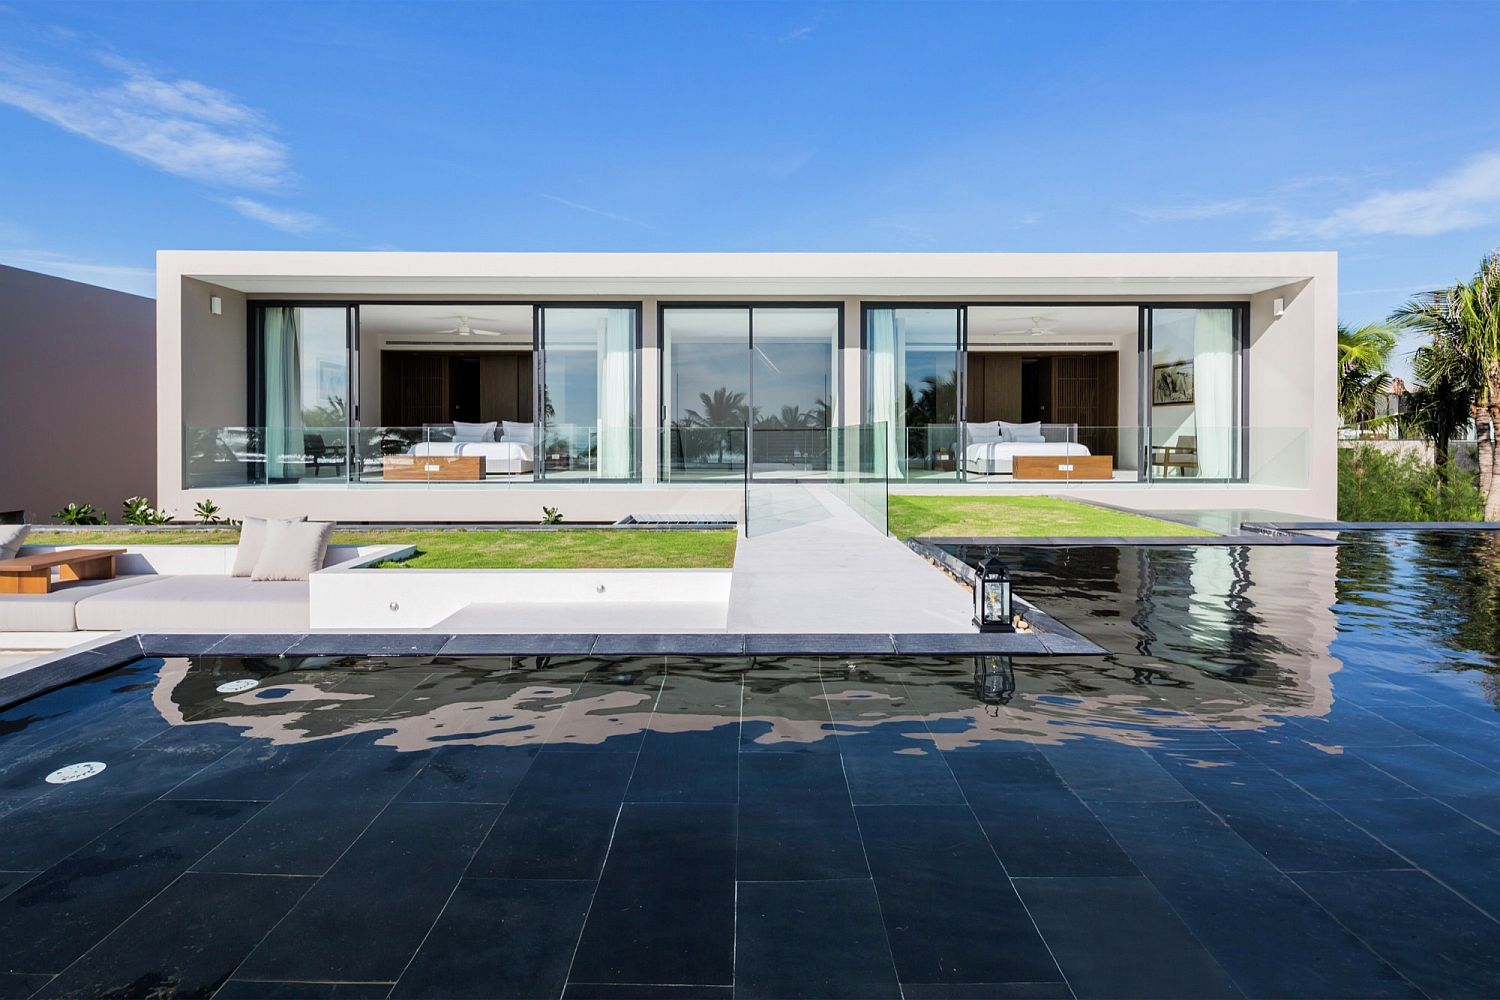 Series-of-water-bodies-and-gardens-outside-the-seaside-villas